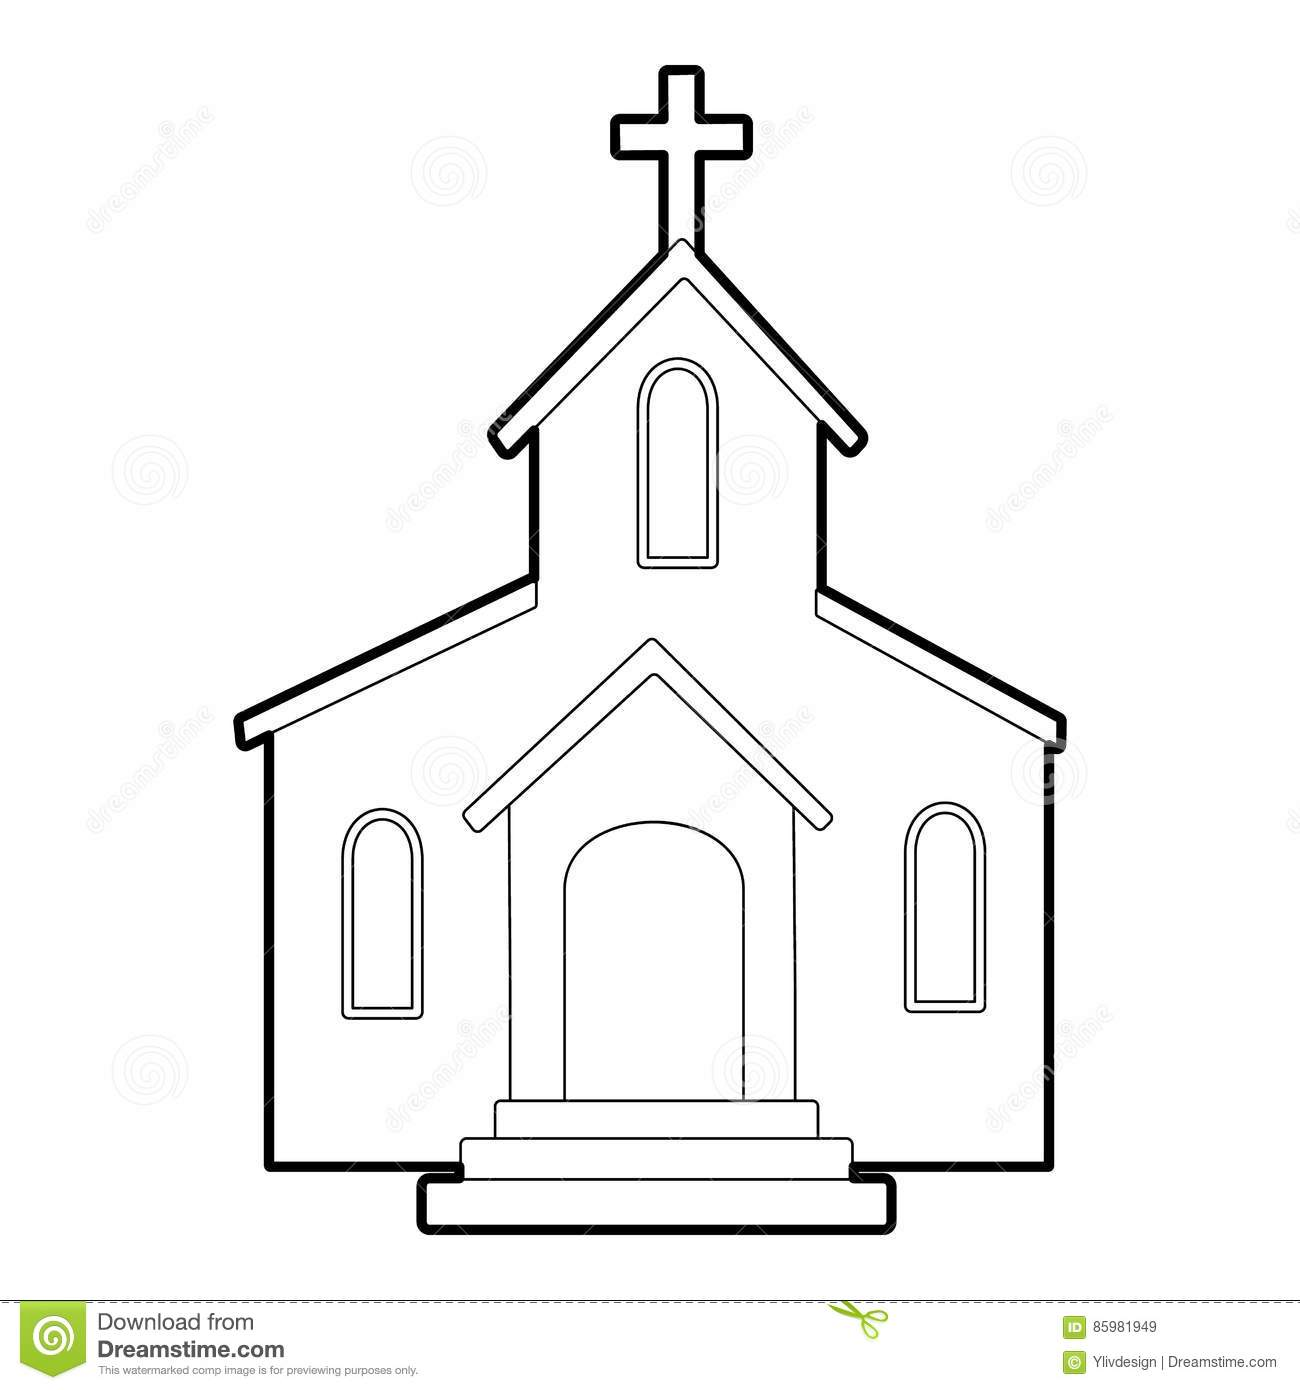 Church icon, outline style stock vector. Illustration of ...